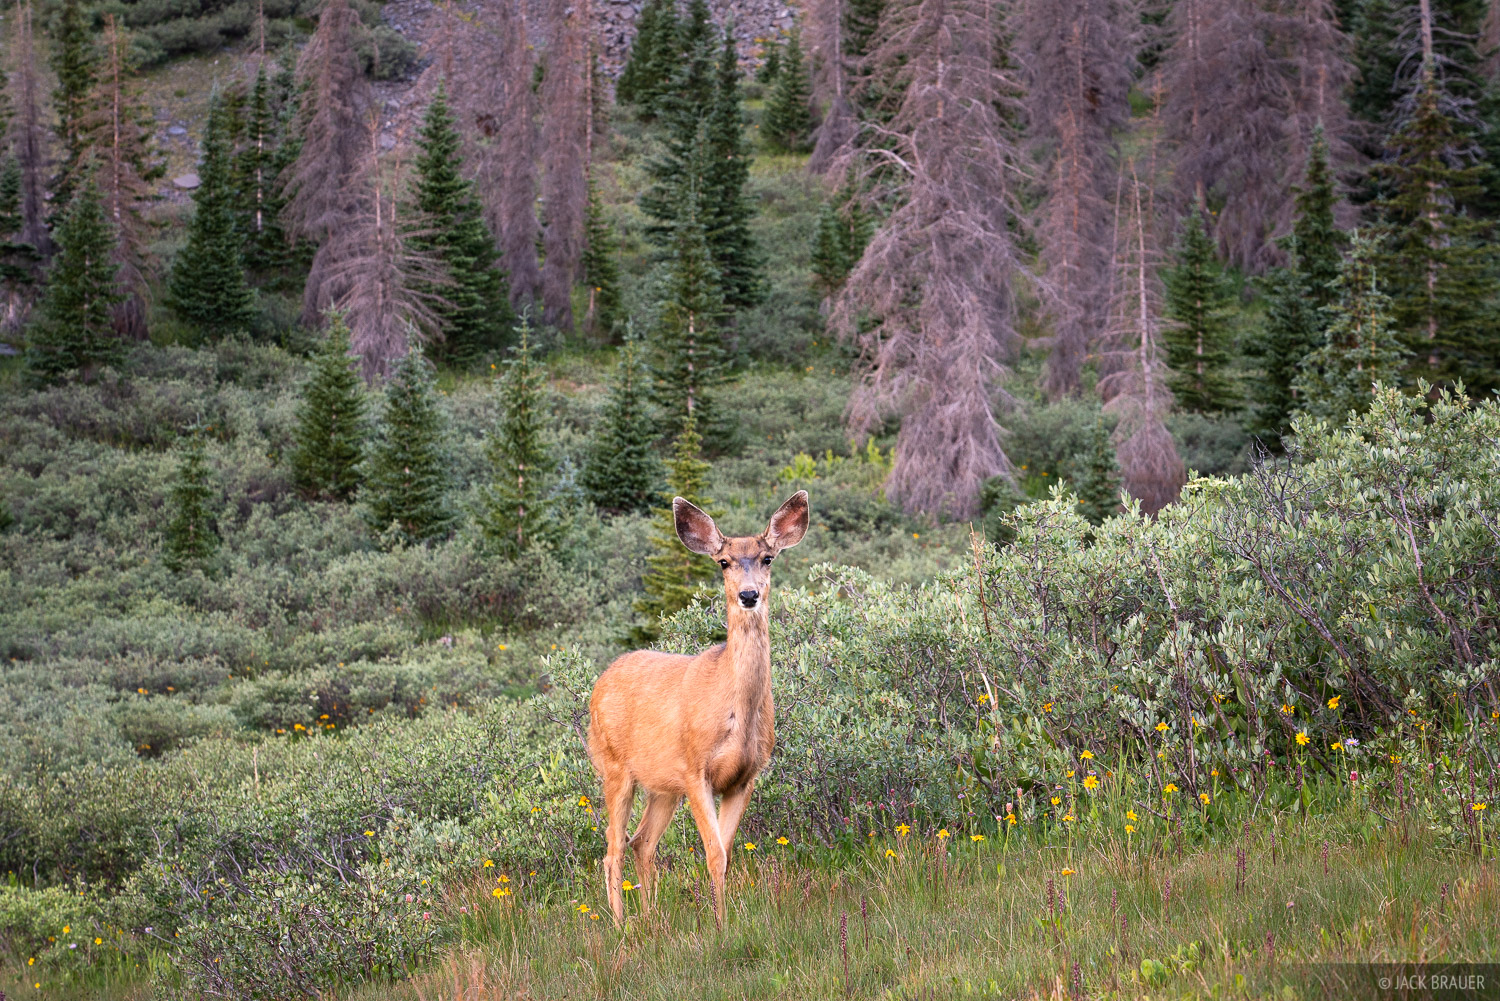 Colorado, San Juan Mountains, Weminuche Wilderness, deer, photo